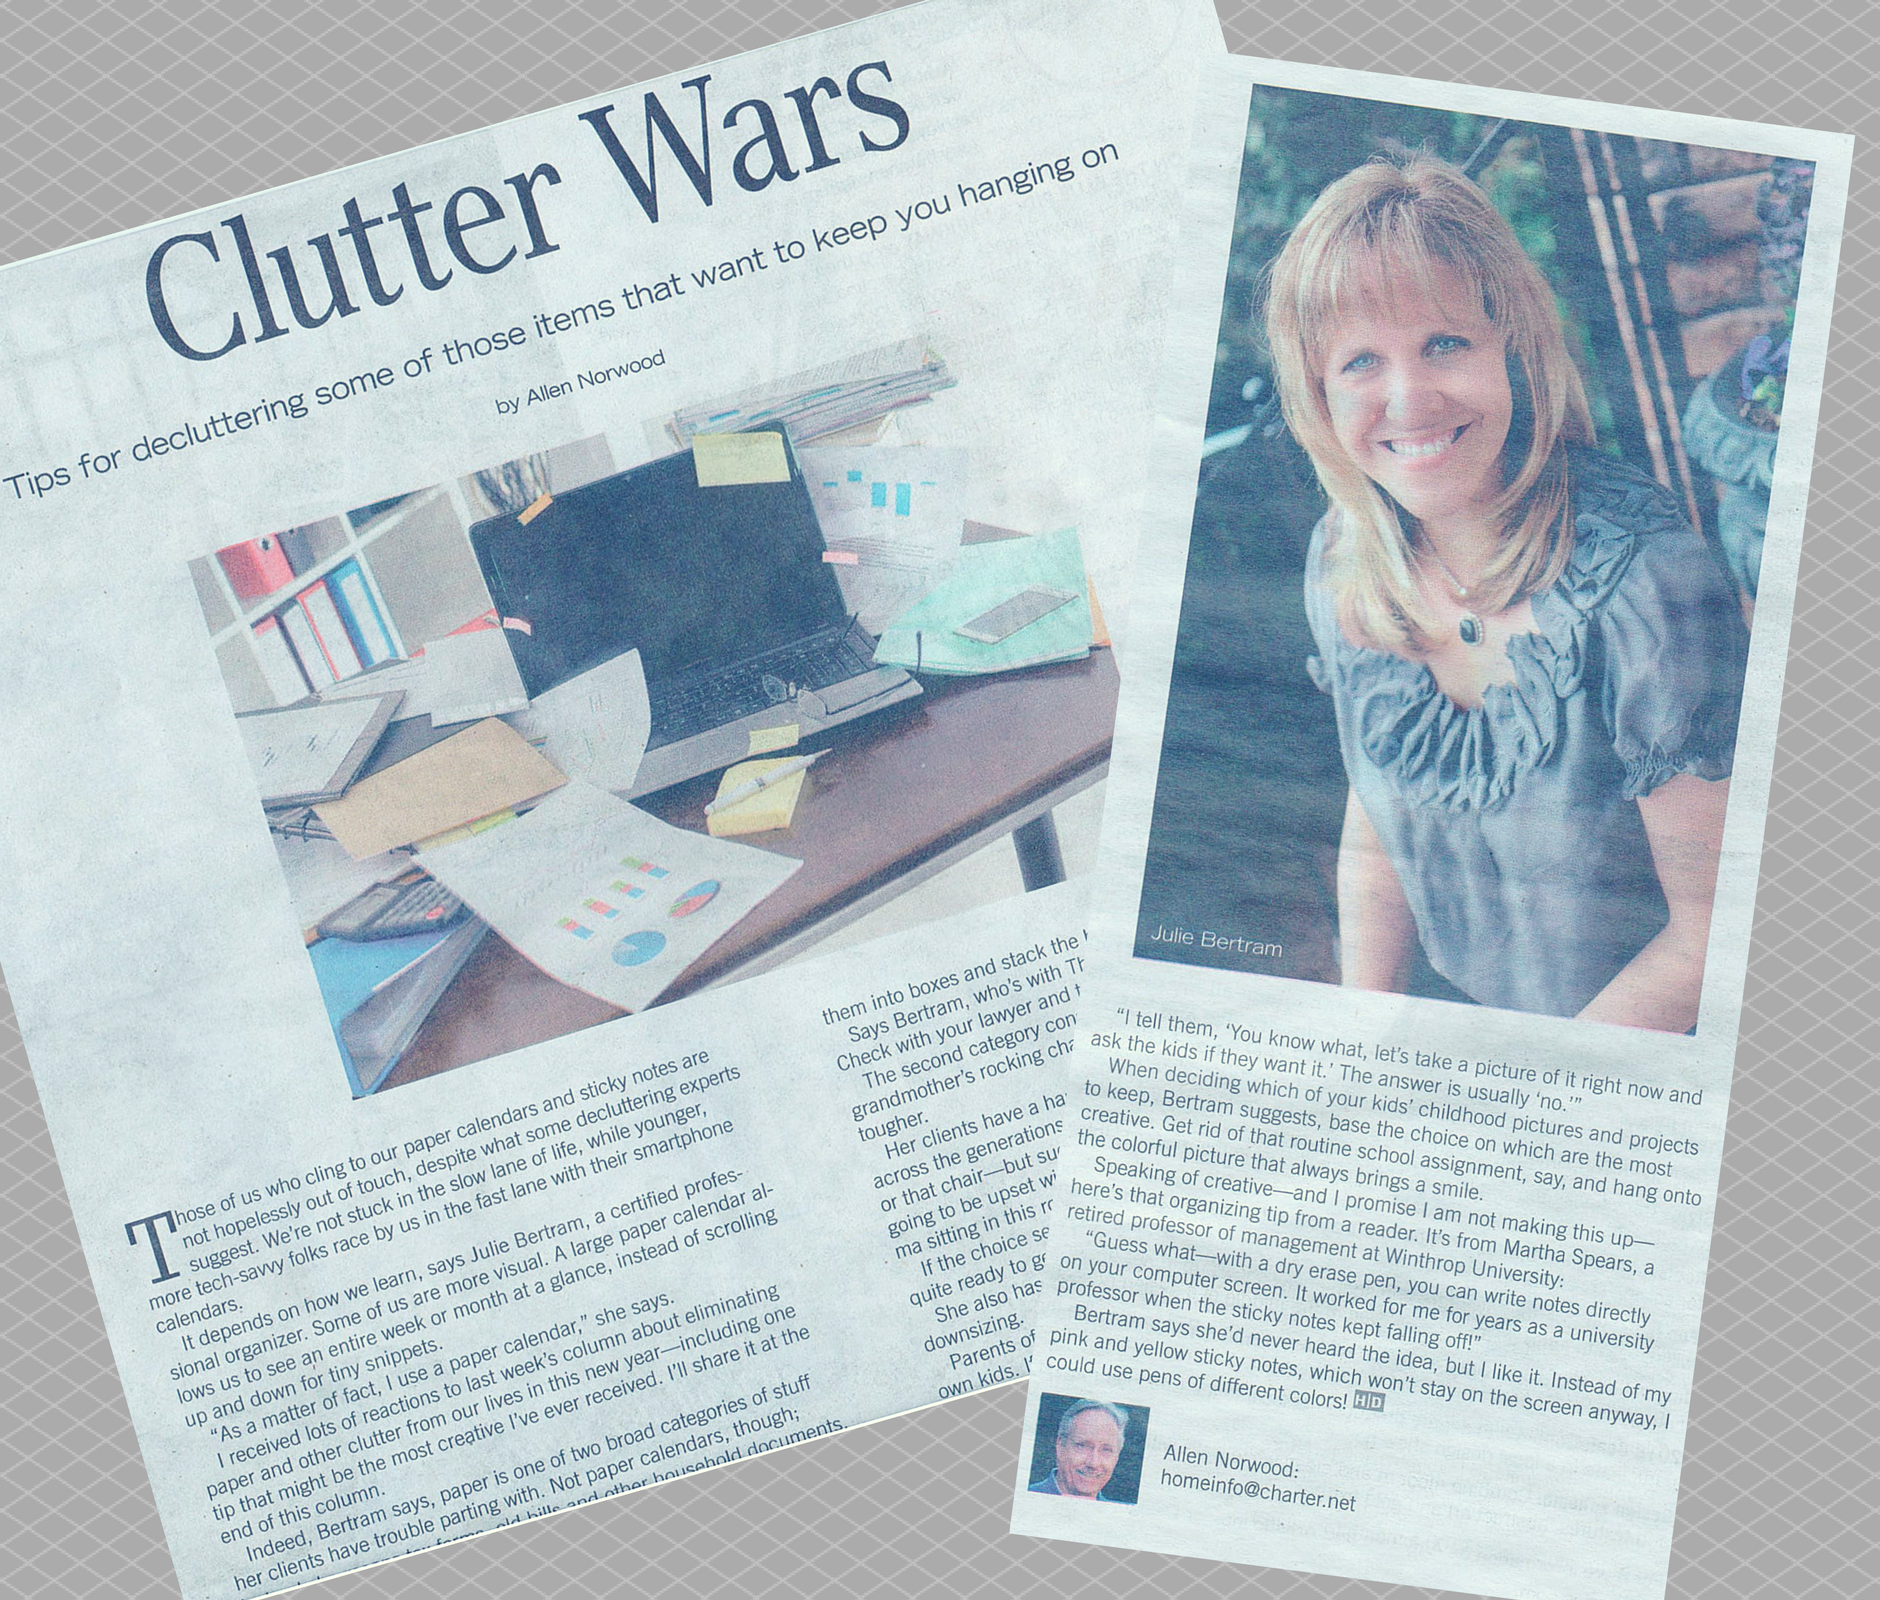 Our own  Julie Kilian Bertram  was featured in an article called 'Clutter Wars' in a special Home/Design feature of the  The Charlotte Observer .